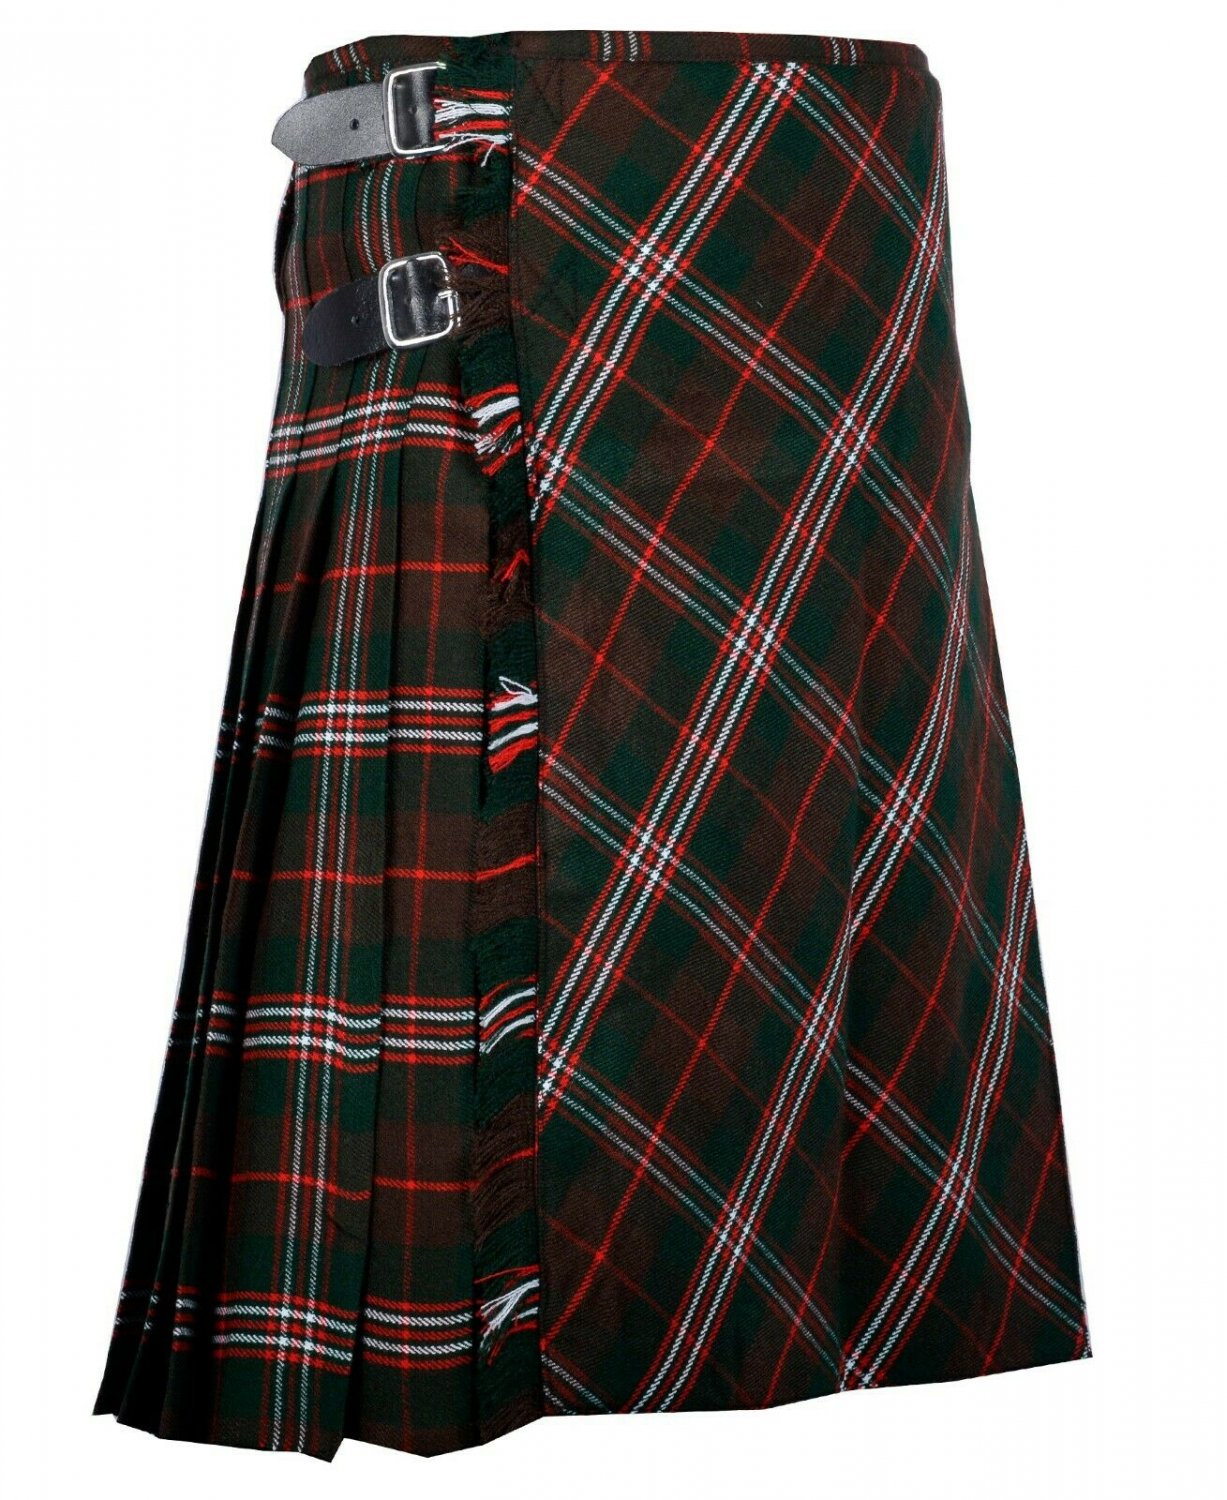 56 inches waist Bias Apron Traditional 5 Yard Scottish Kilt for Men - Scott Hunting Tartan